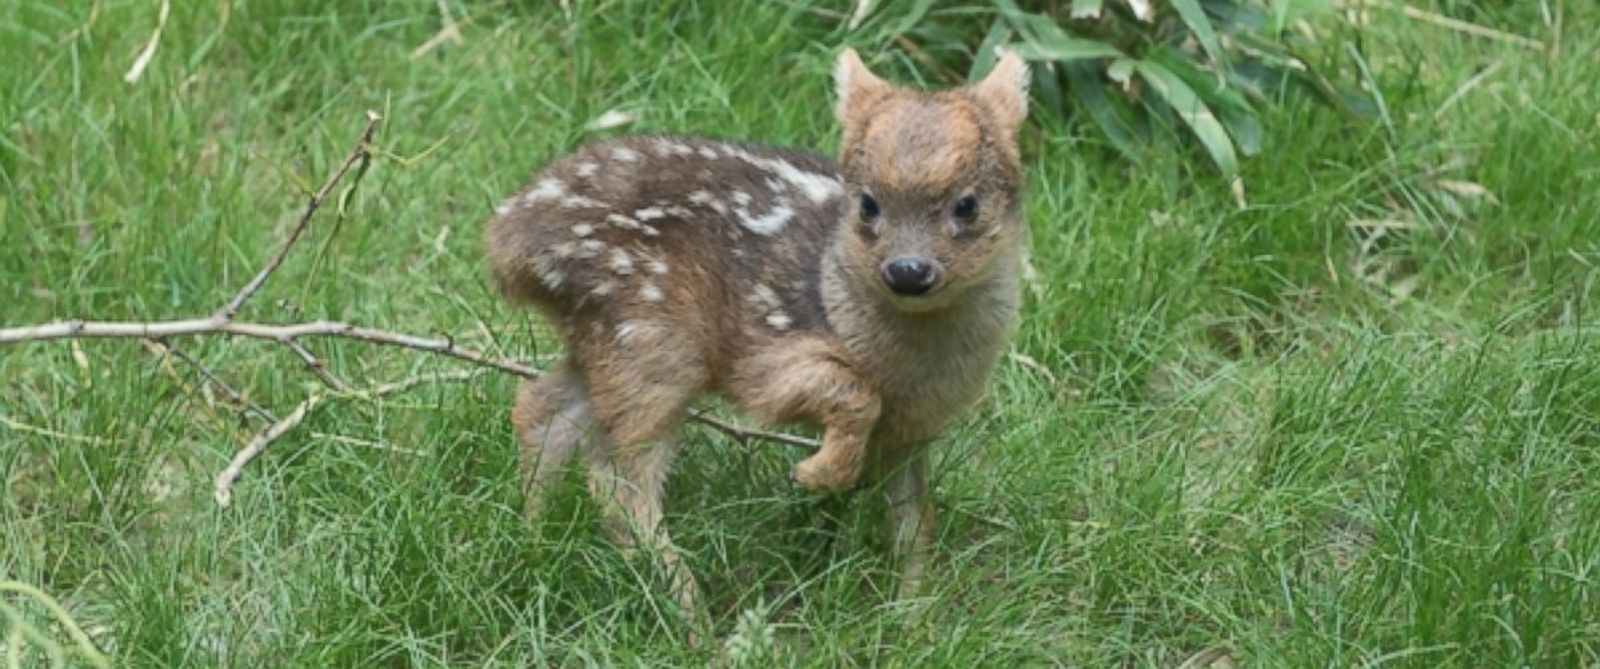 PHOTO: A photo released by the Wildlife Conservation Society shows the worlds smallest deer species, born at the Queens Zoo in New York.